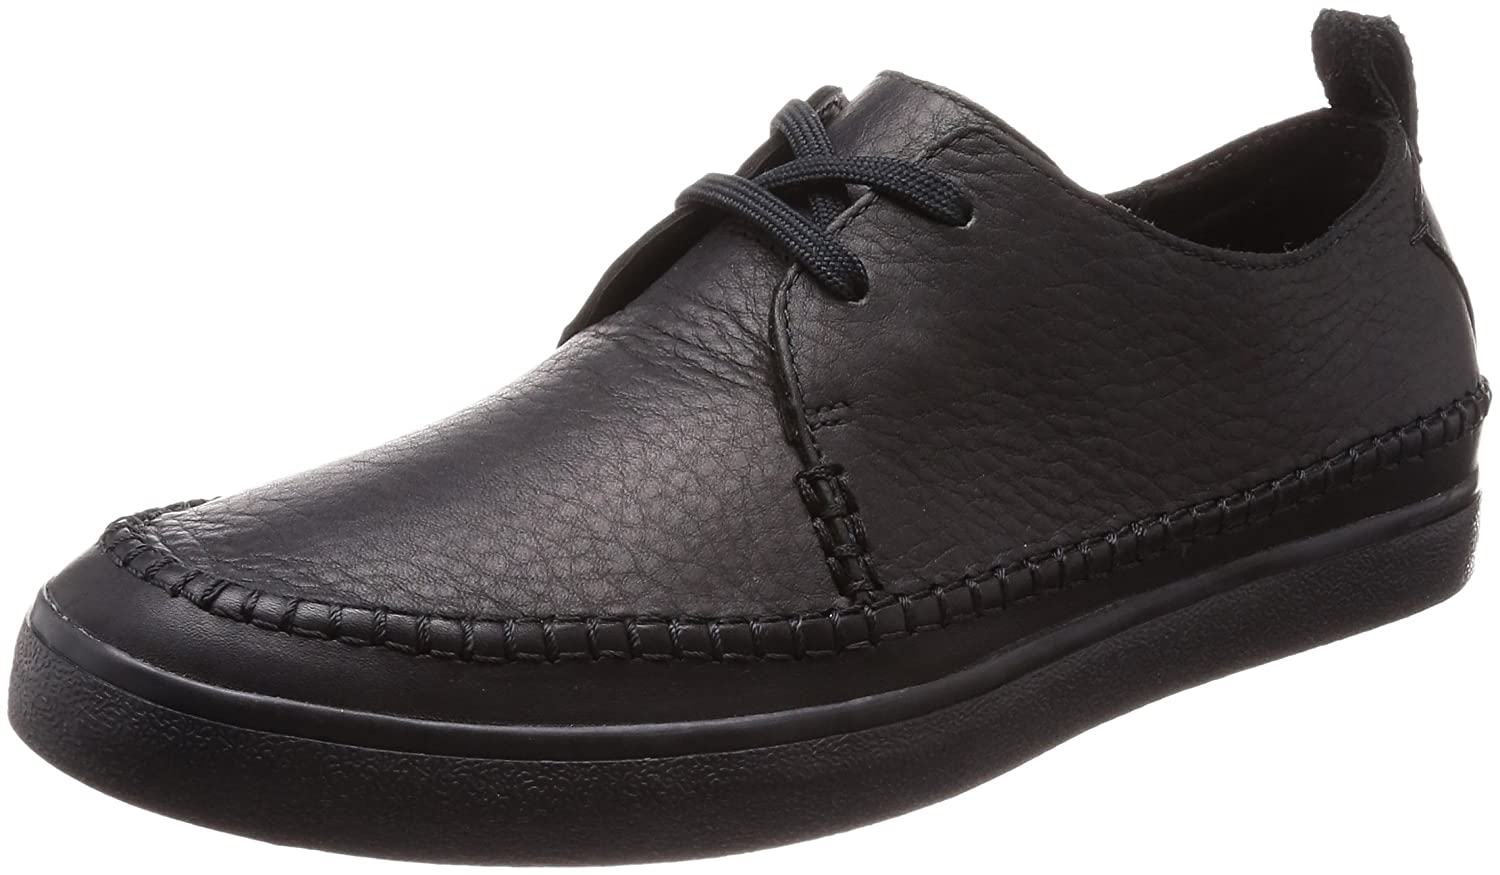 Clarks Kessell Craft, Zapatos de Cordones Derby para Hombre 41 EU|Negro (Black Leather)